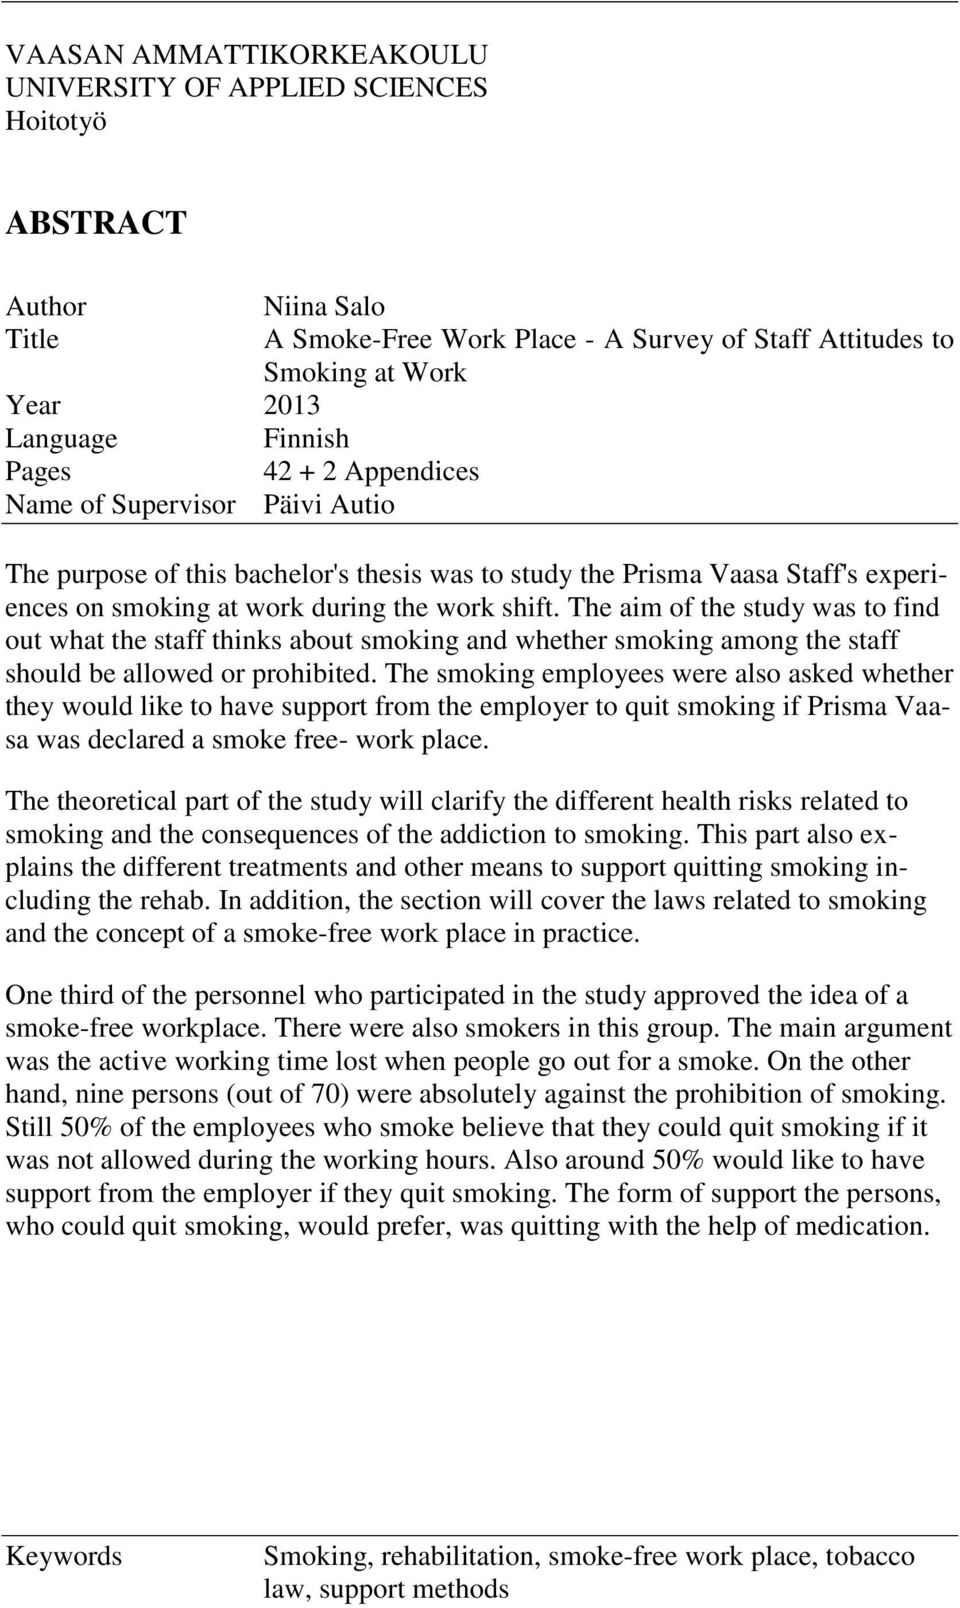 The aim of the study was to find out what the staff thinks about smoking and whether smoking among the staff should be allowed or prohibited.